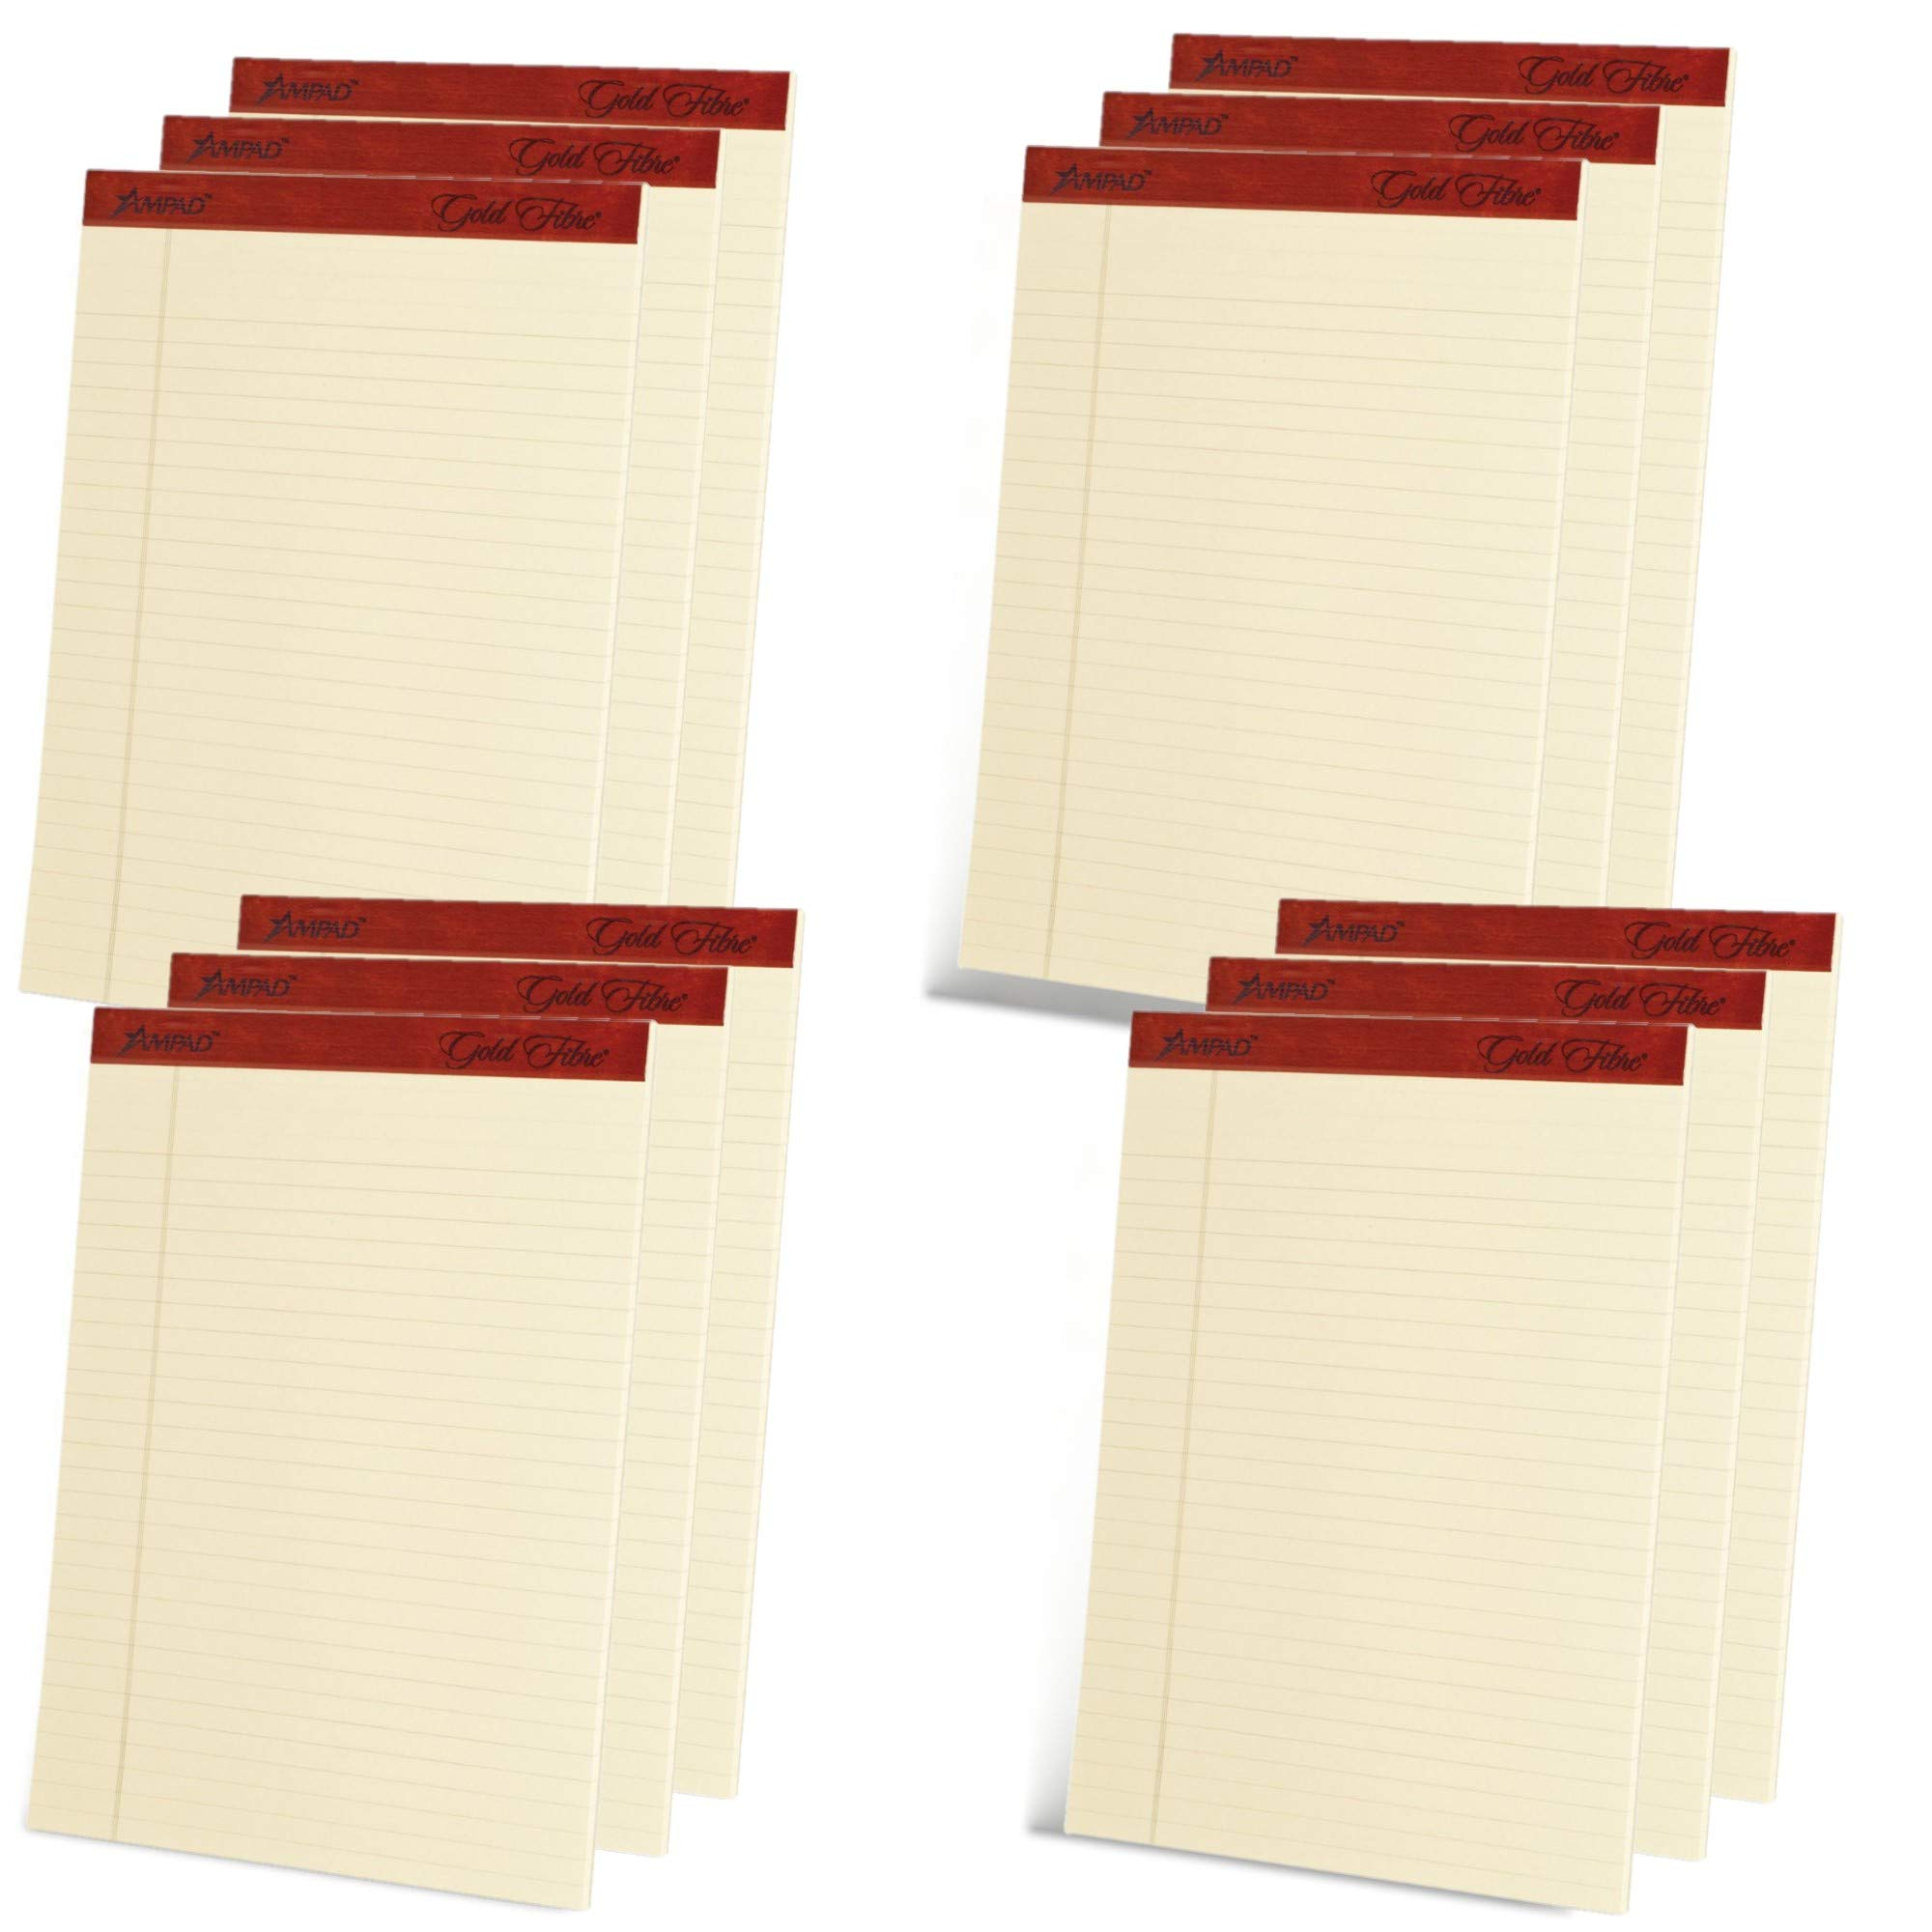 Ampad Heavyweight Writing Pad, 8.5 x 11.75 Inches, Ivory, 50-Sheet Pad (12 Pads per Pack) (20-011) by Ampad